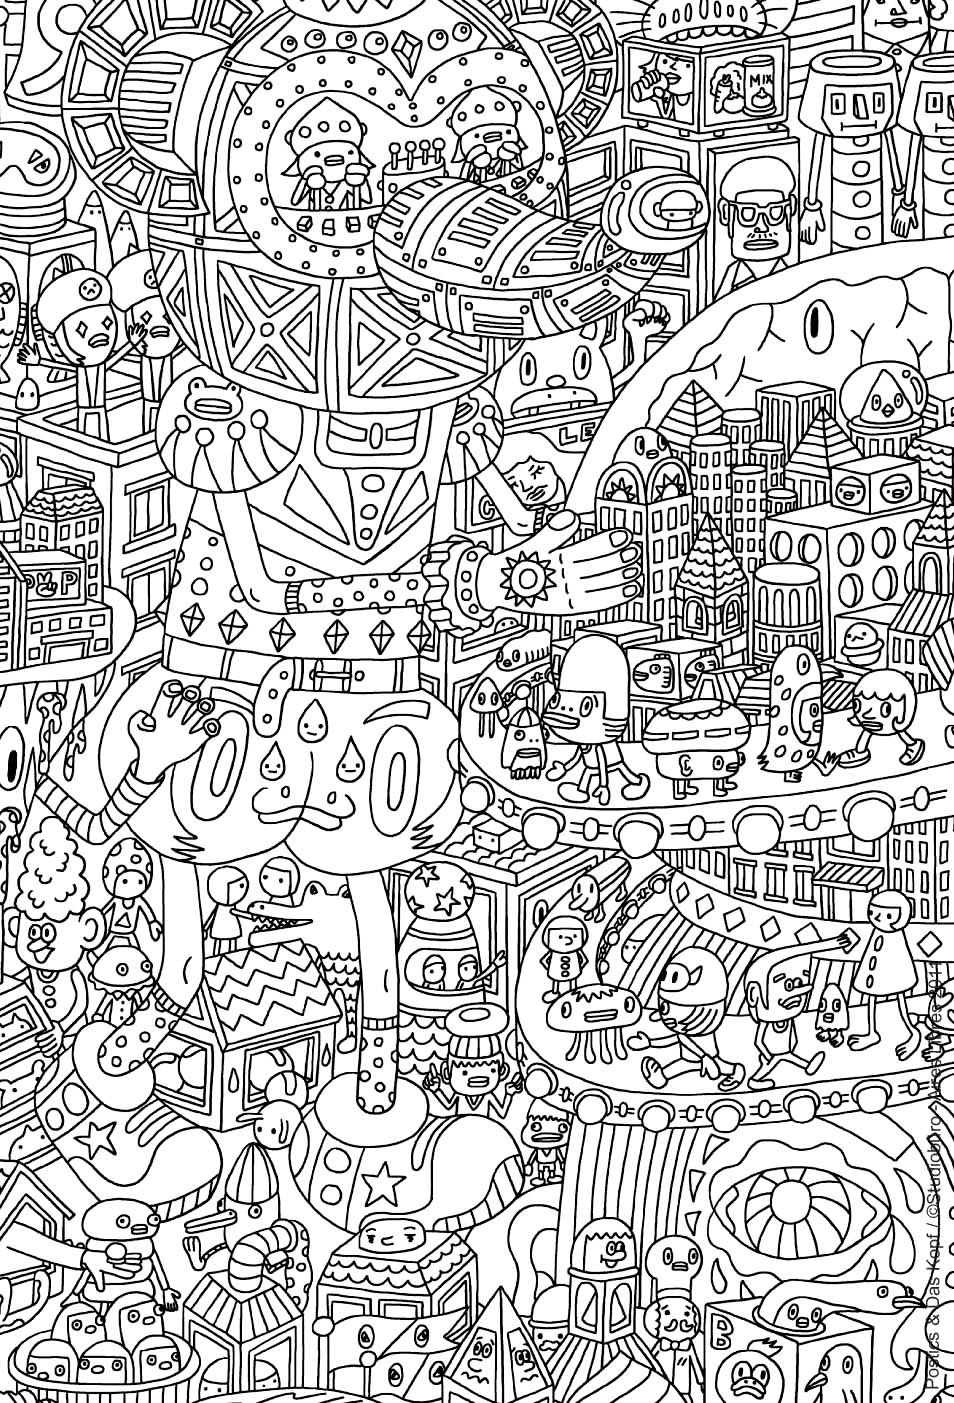 Very complex coloring page of an imaginary city with robots and other strange creatures - 4